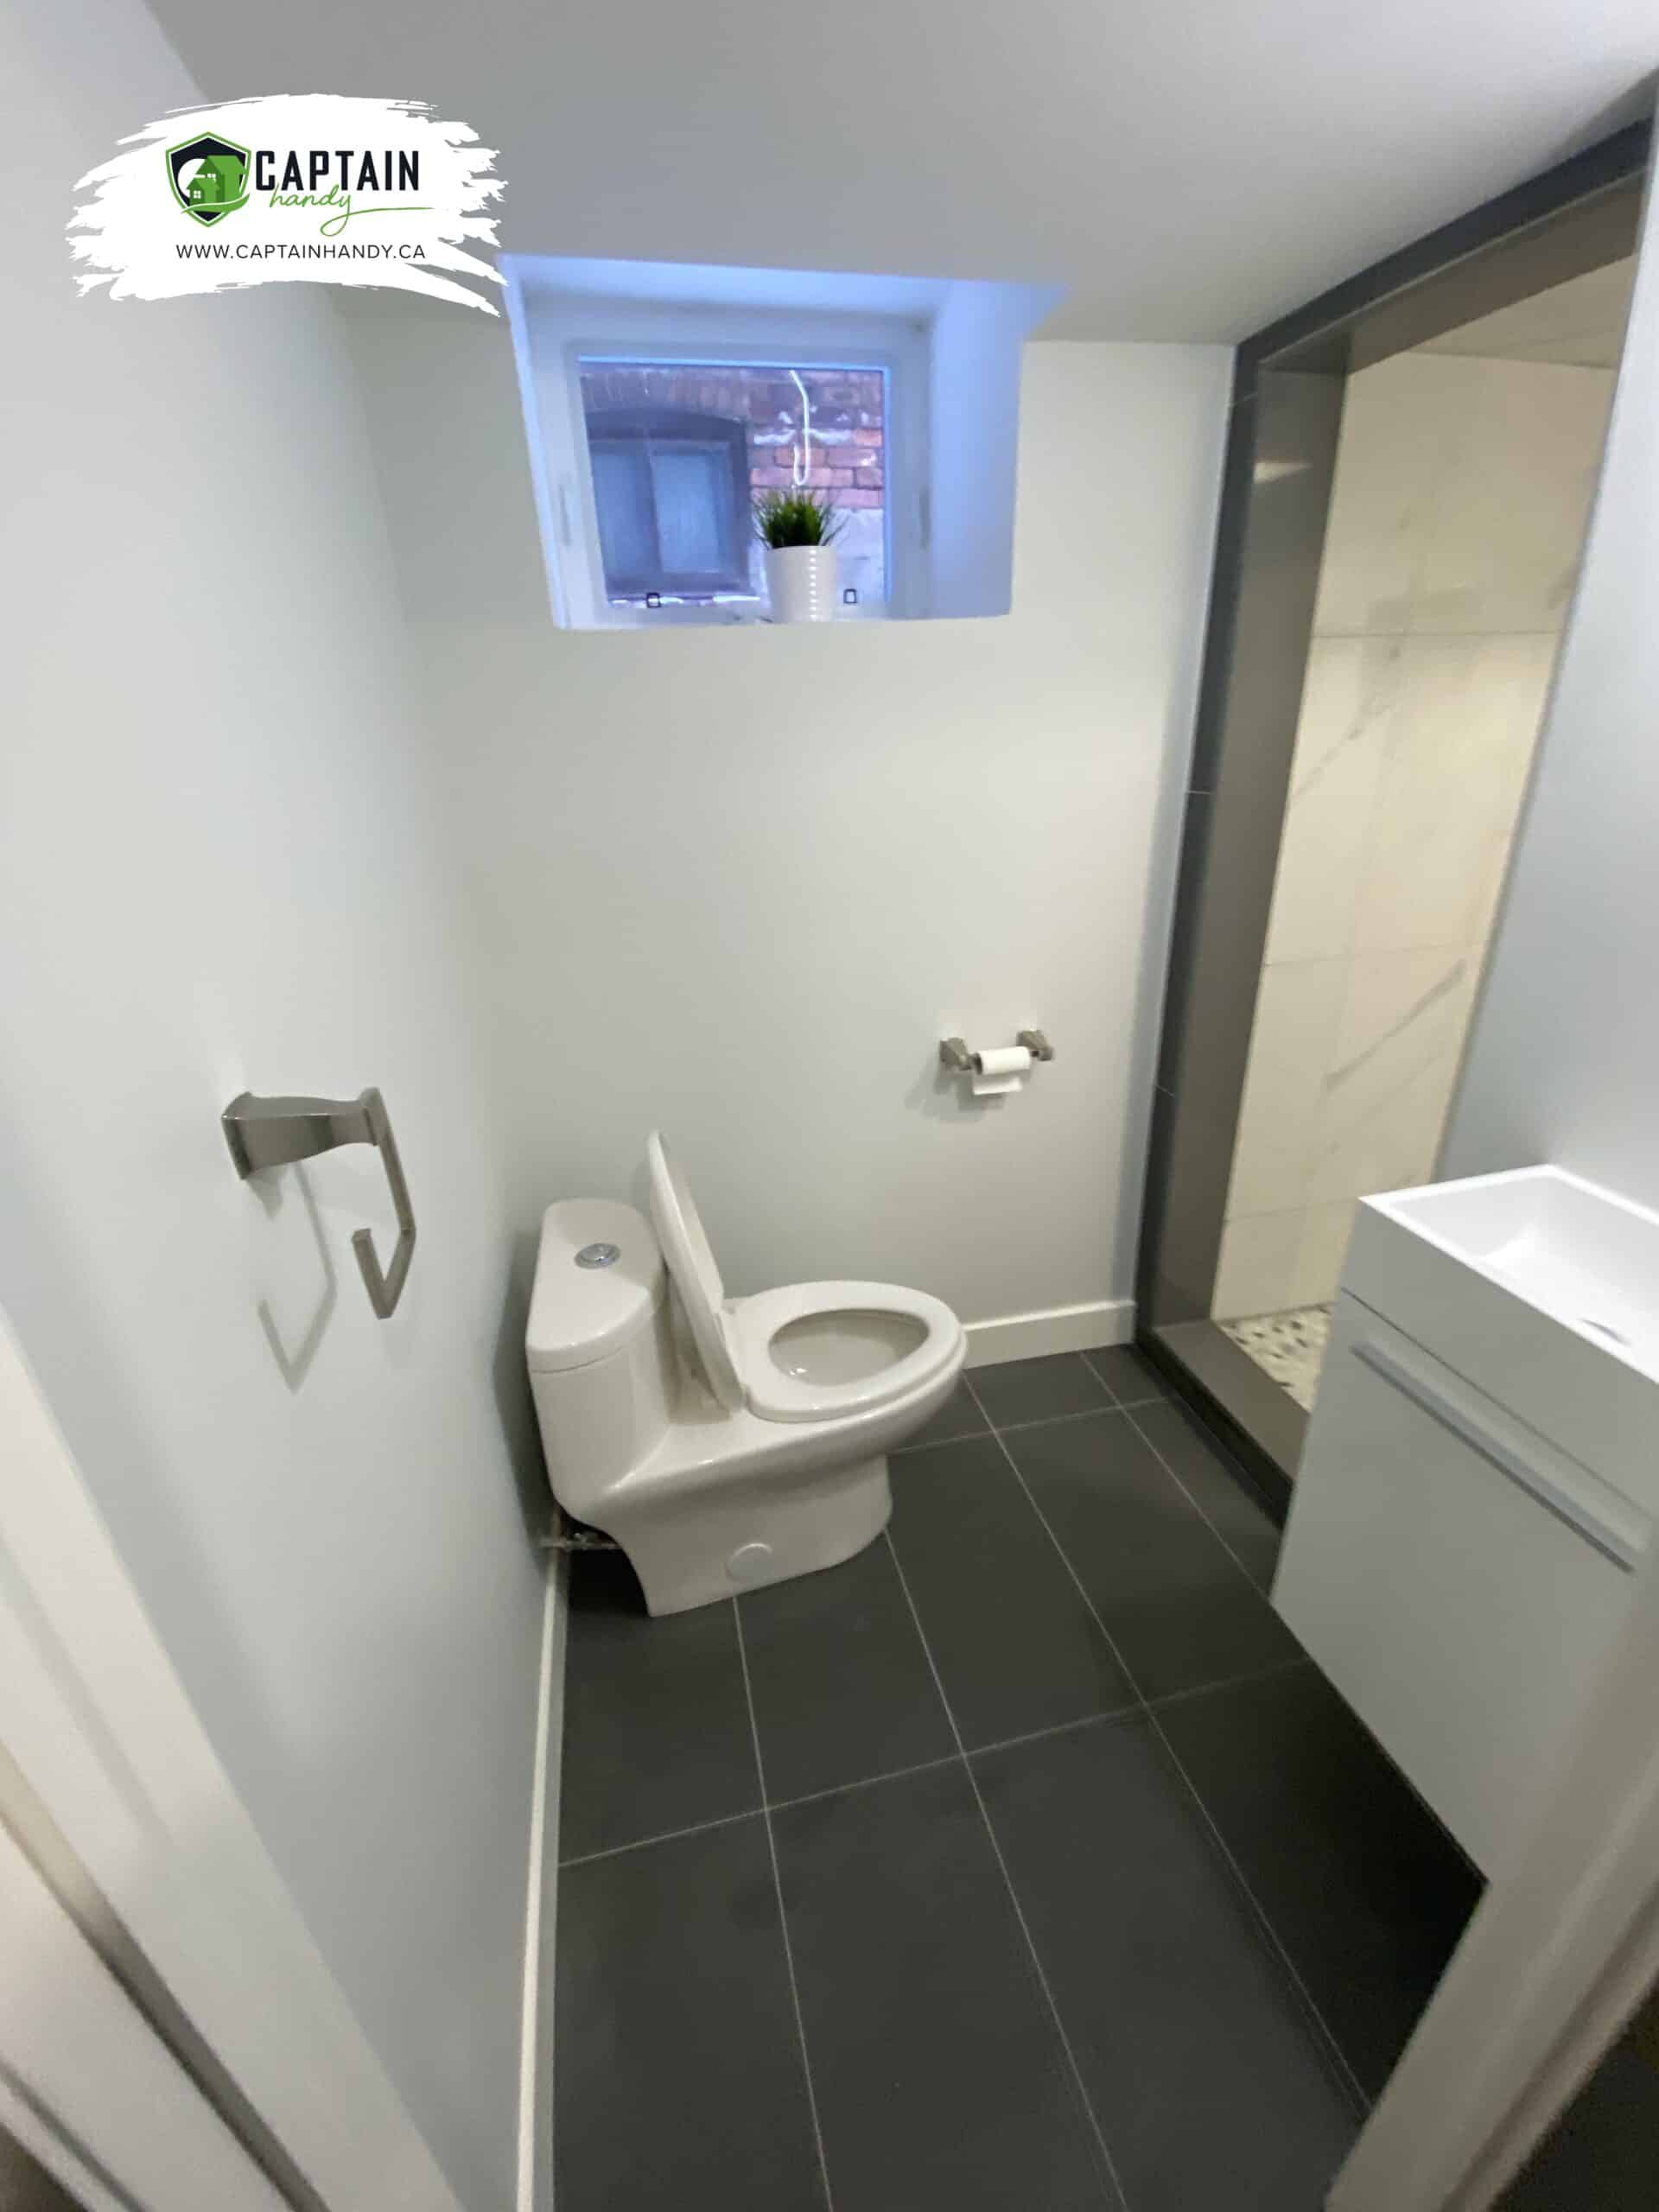 bathroom flooring in Caledon